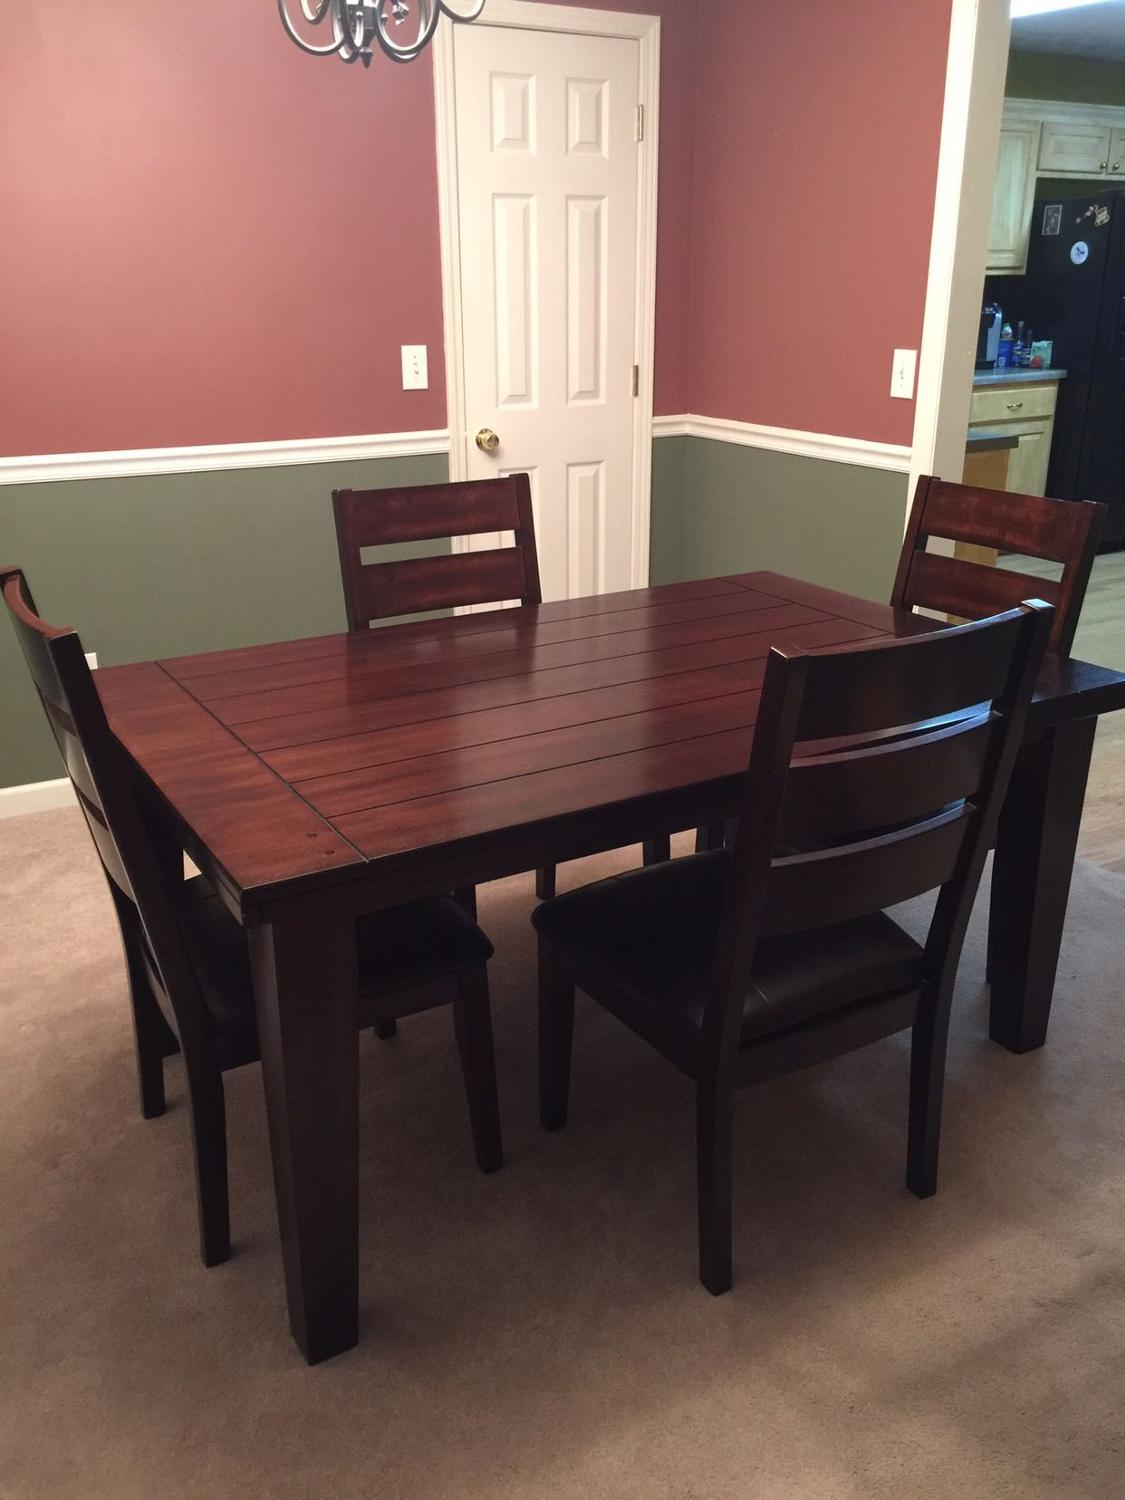 Find More Ashley Furniture Kitchen Dining Table With 4 Chairs For Sale At Up To 90 Off